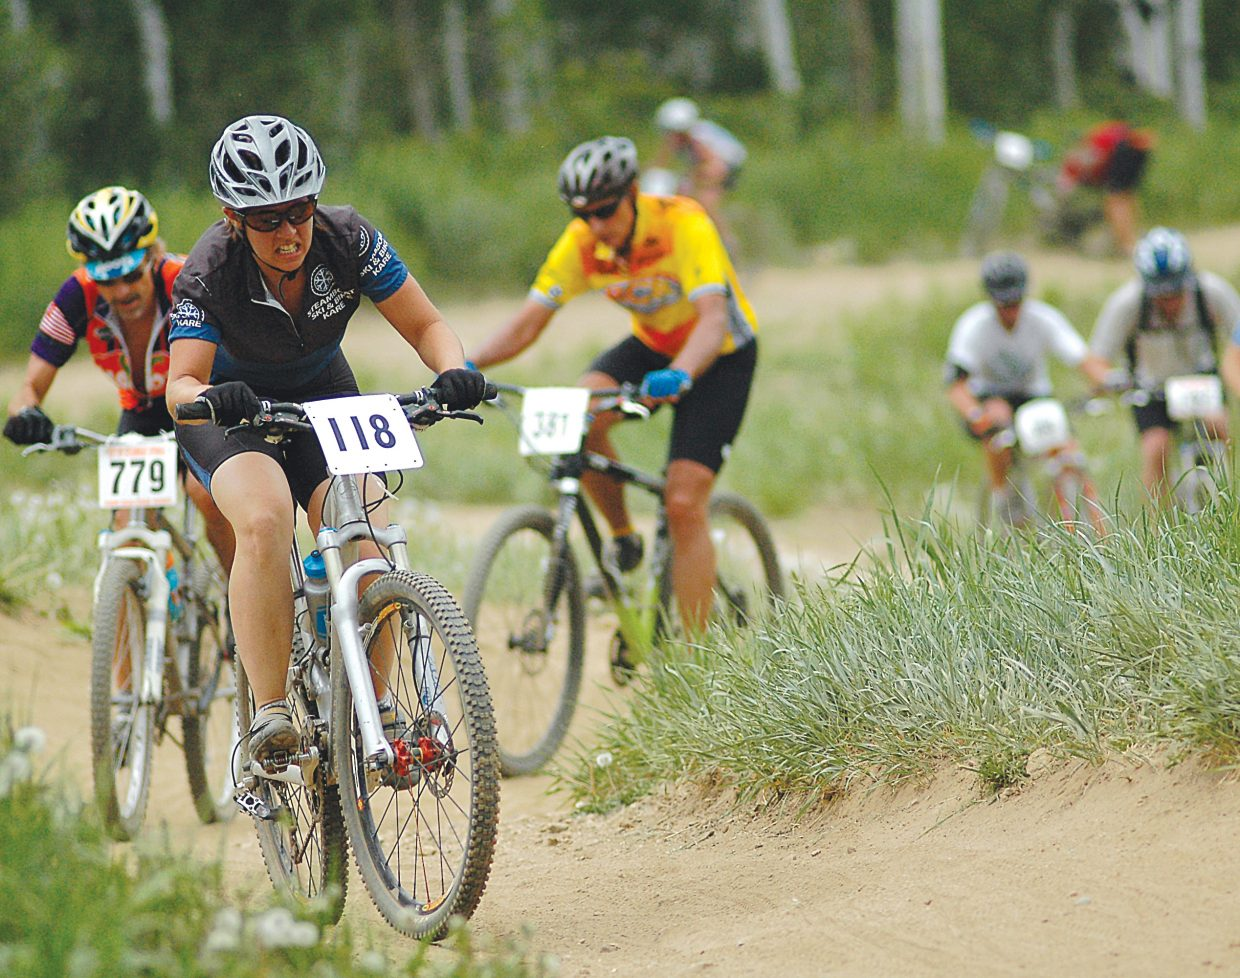 Jody Gale leads a long train of riders up Mount Werner as a part of the Thundehead Hill Climb Town Challenge mountain bike race in 2008.